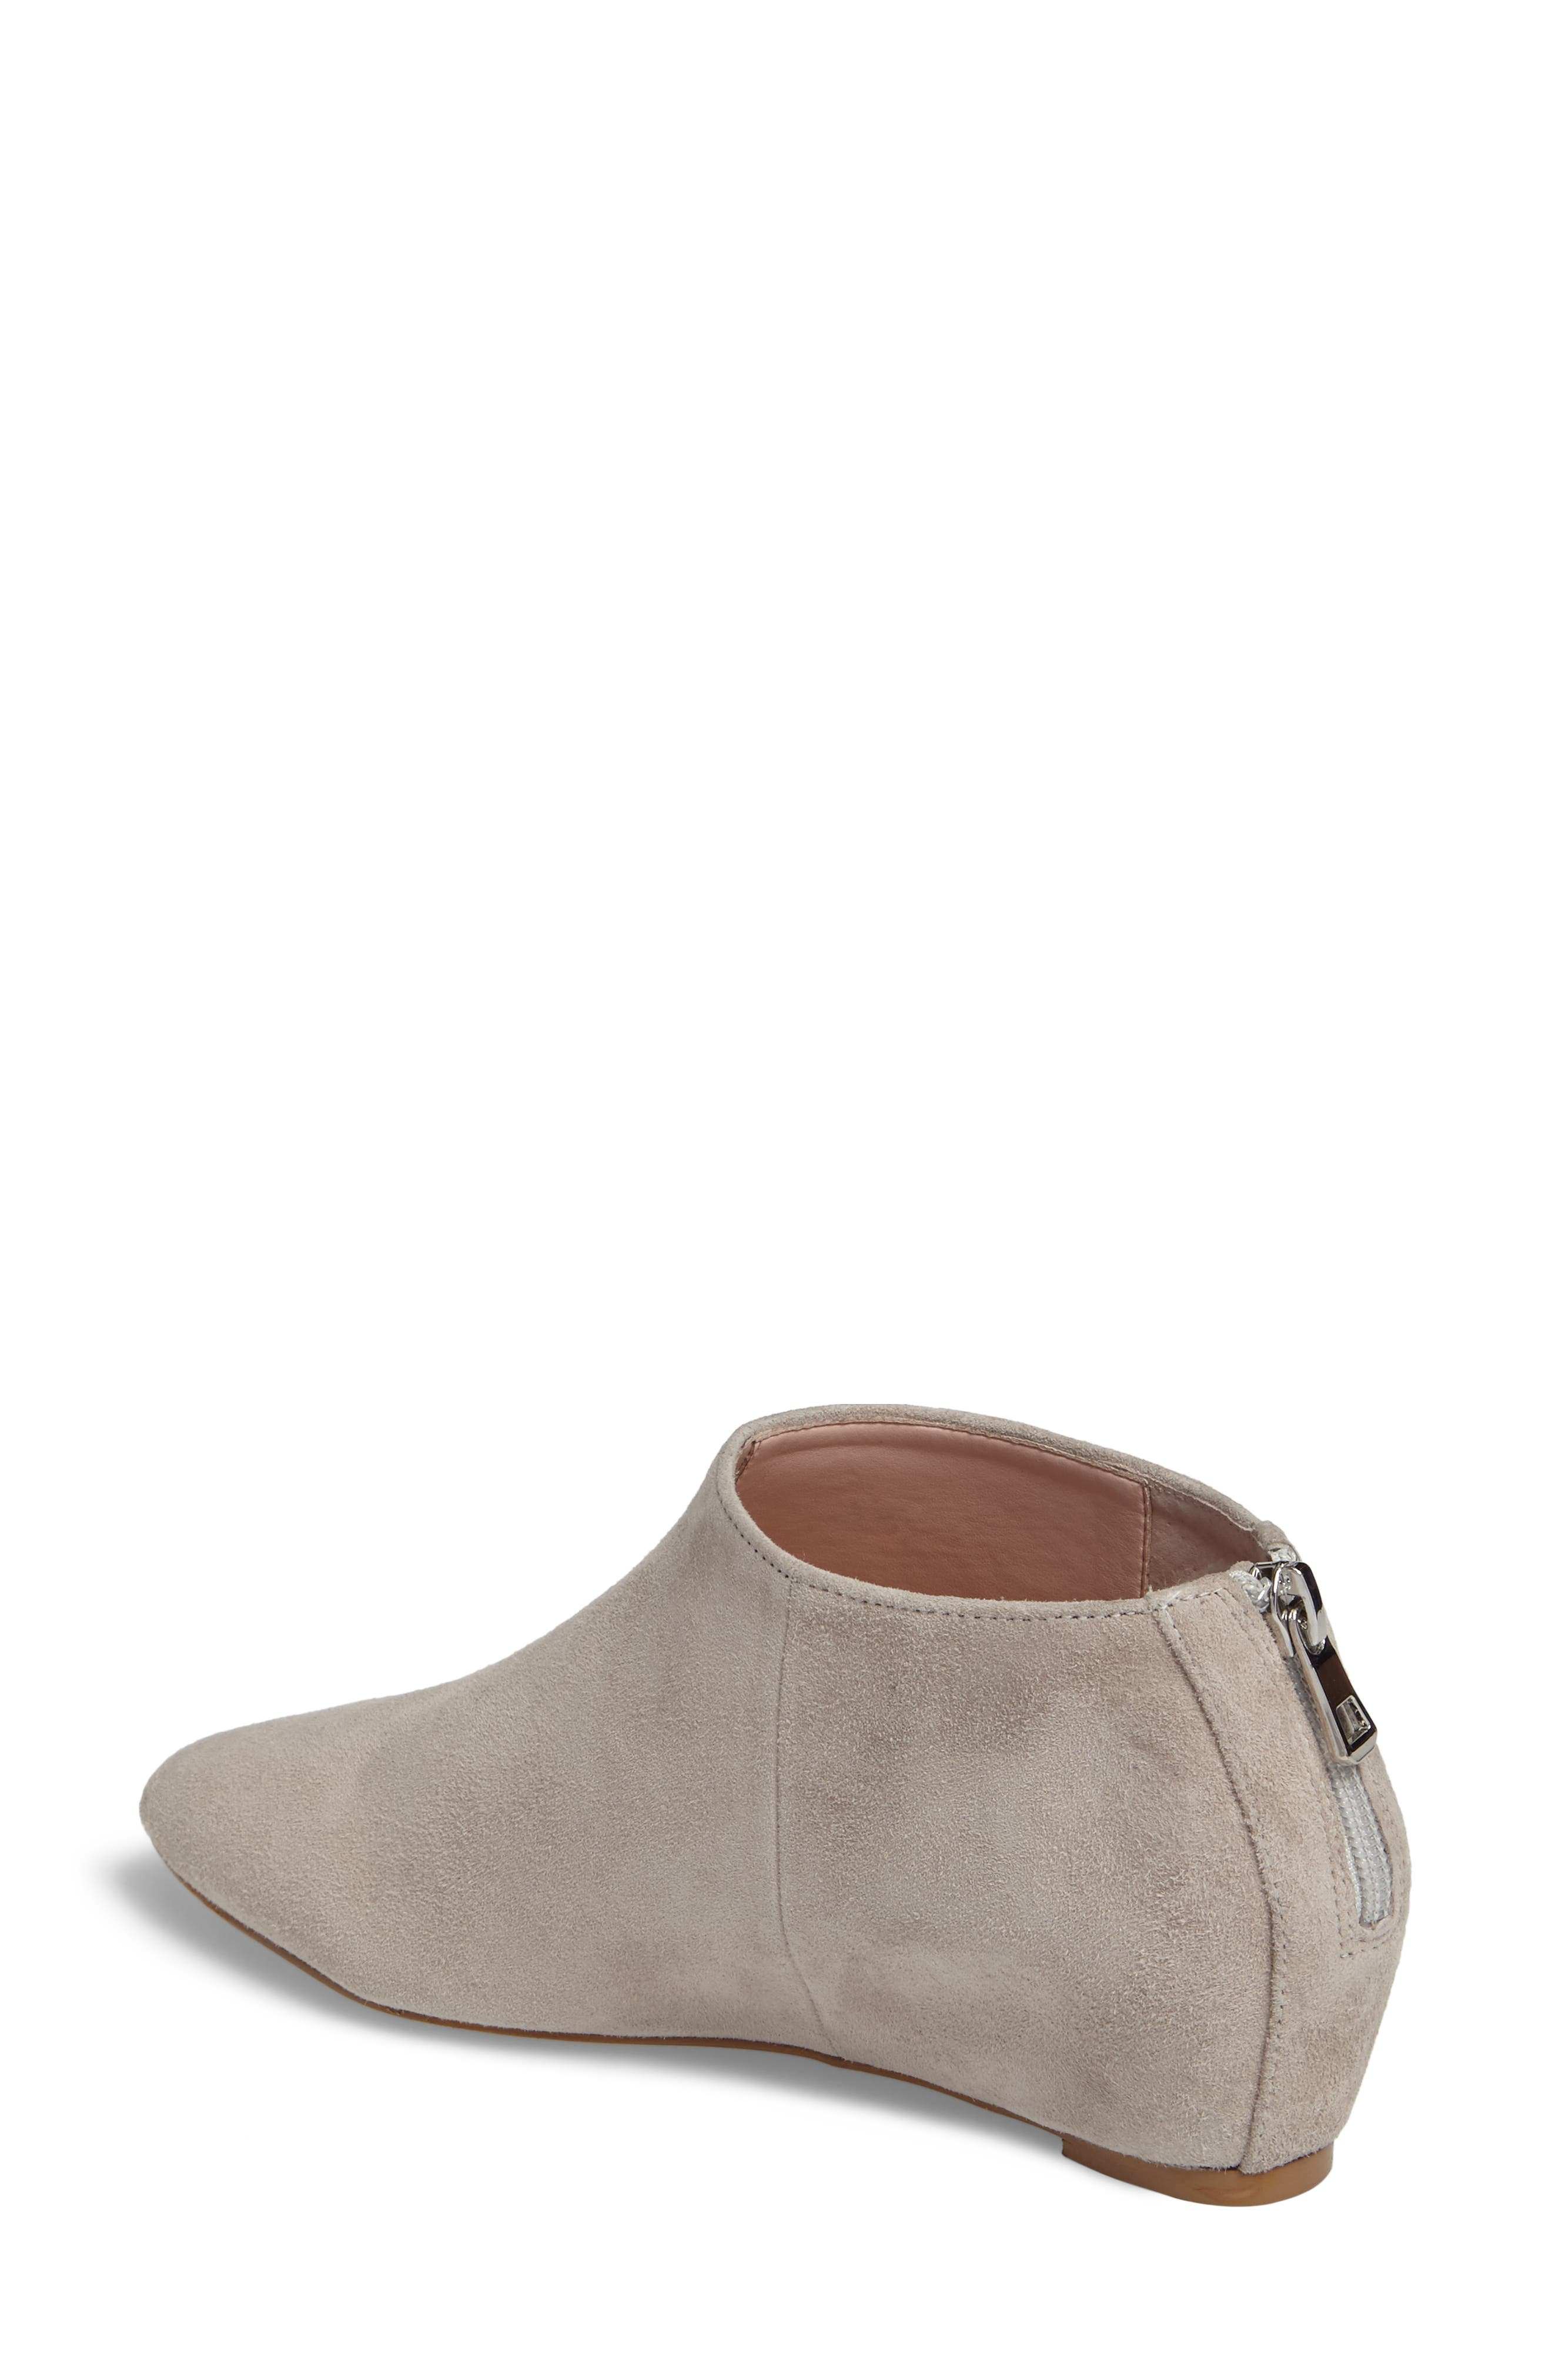 Aves Les Filles Beatrice Ankle Boot,                             Alternate thumbnail 8, color,